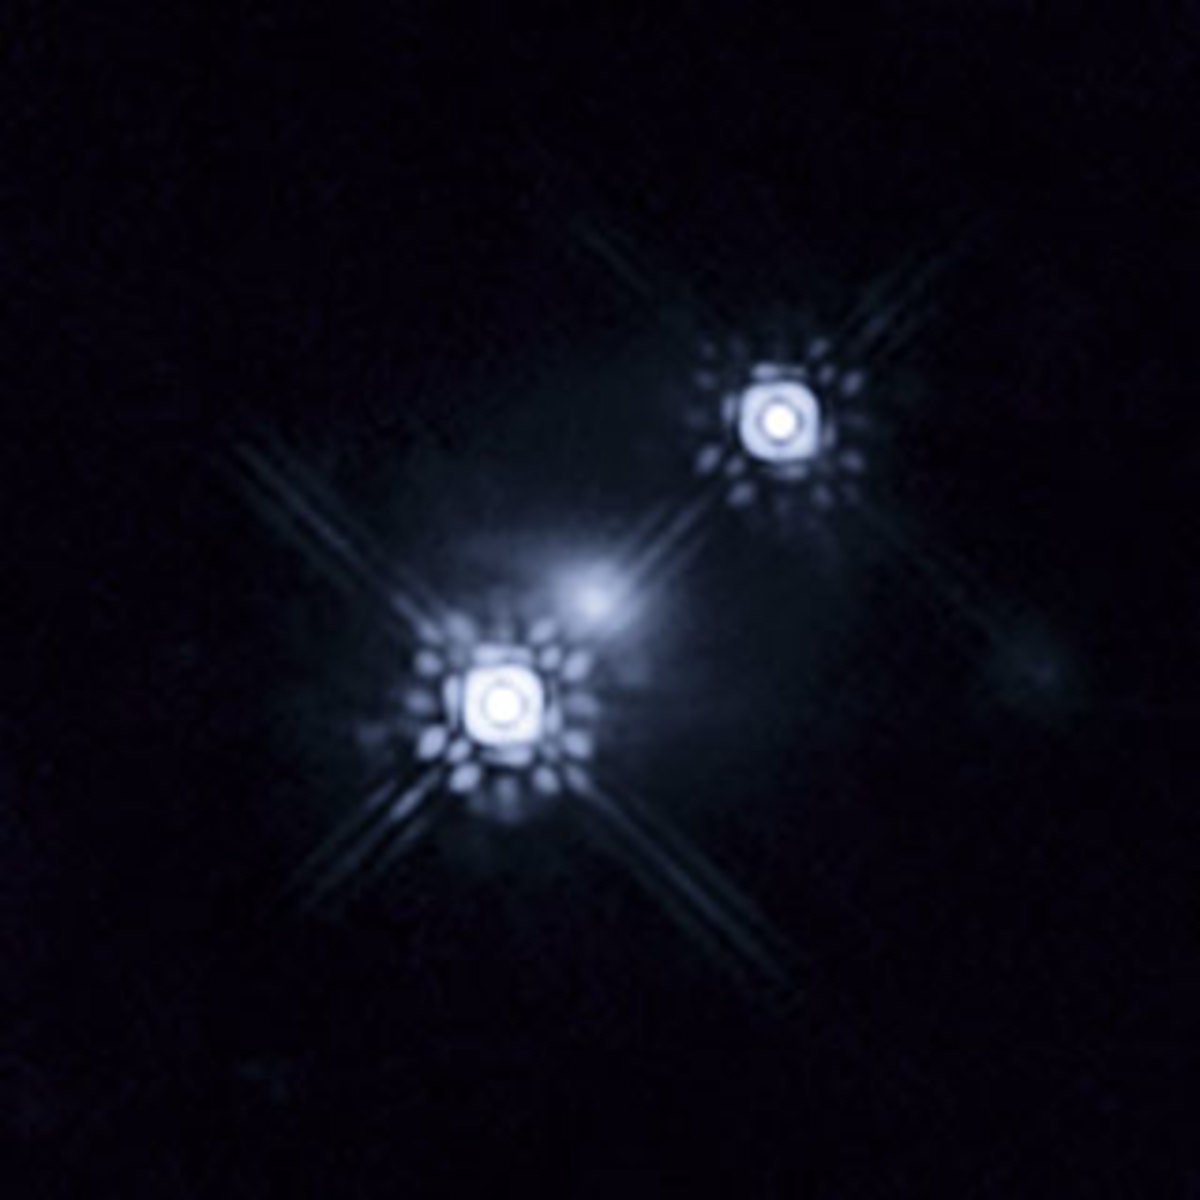 """First-ever photo of an accretion disk around a quasar -- times two! The smudge in the middle is a galaxy whose gravitational lens created a magnified double image of the """"accretion disc"""" around this distant black hole."""